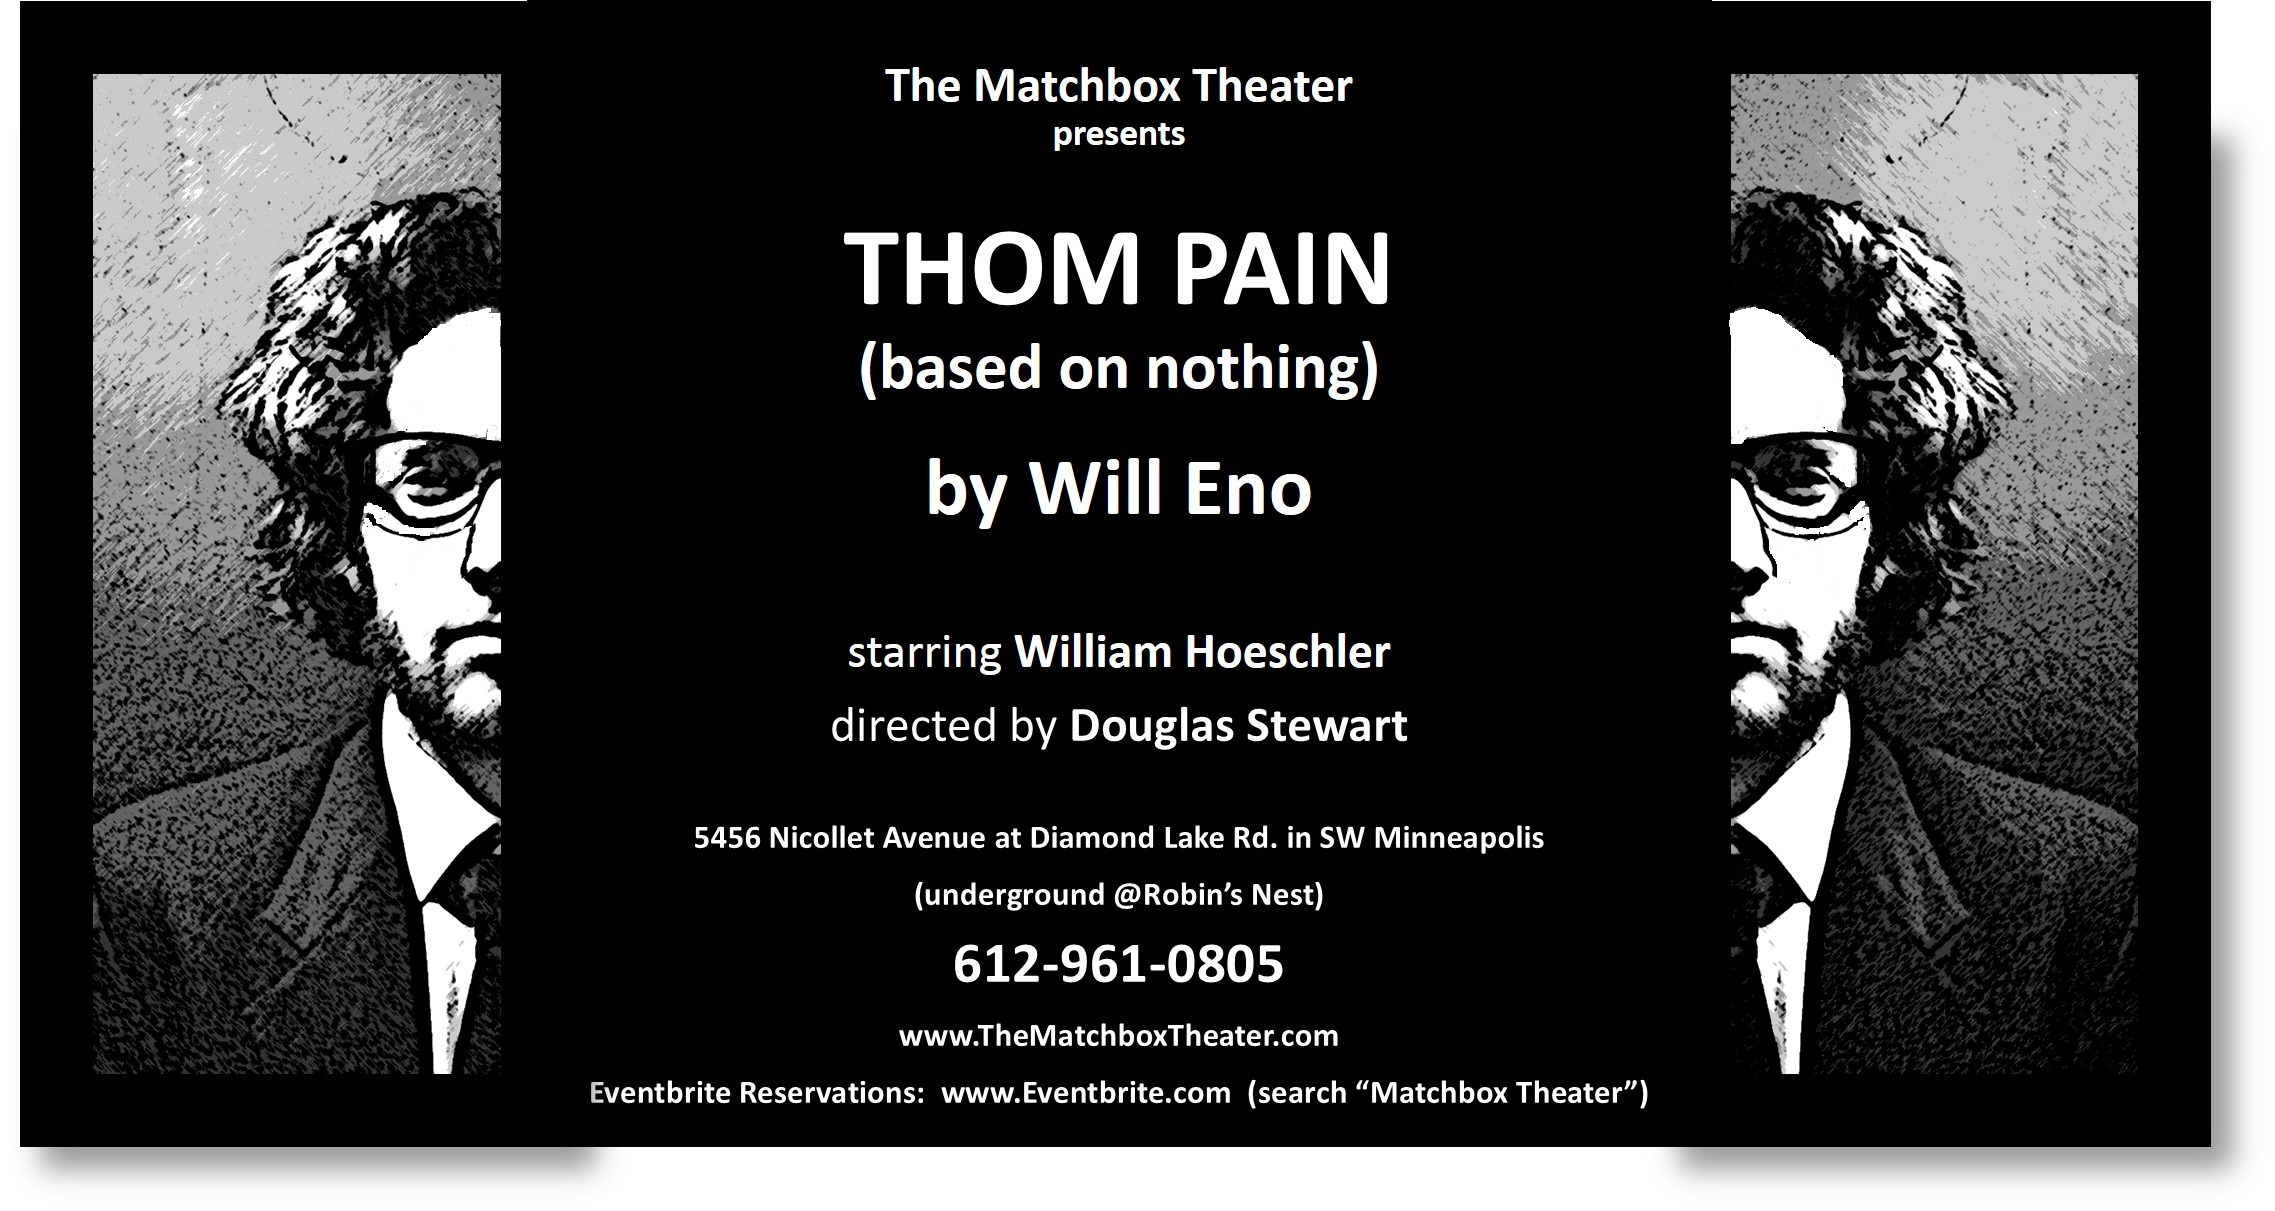 William Hoeschler; Thom Pain; The matchbox Theater; Douglas Stewart